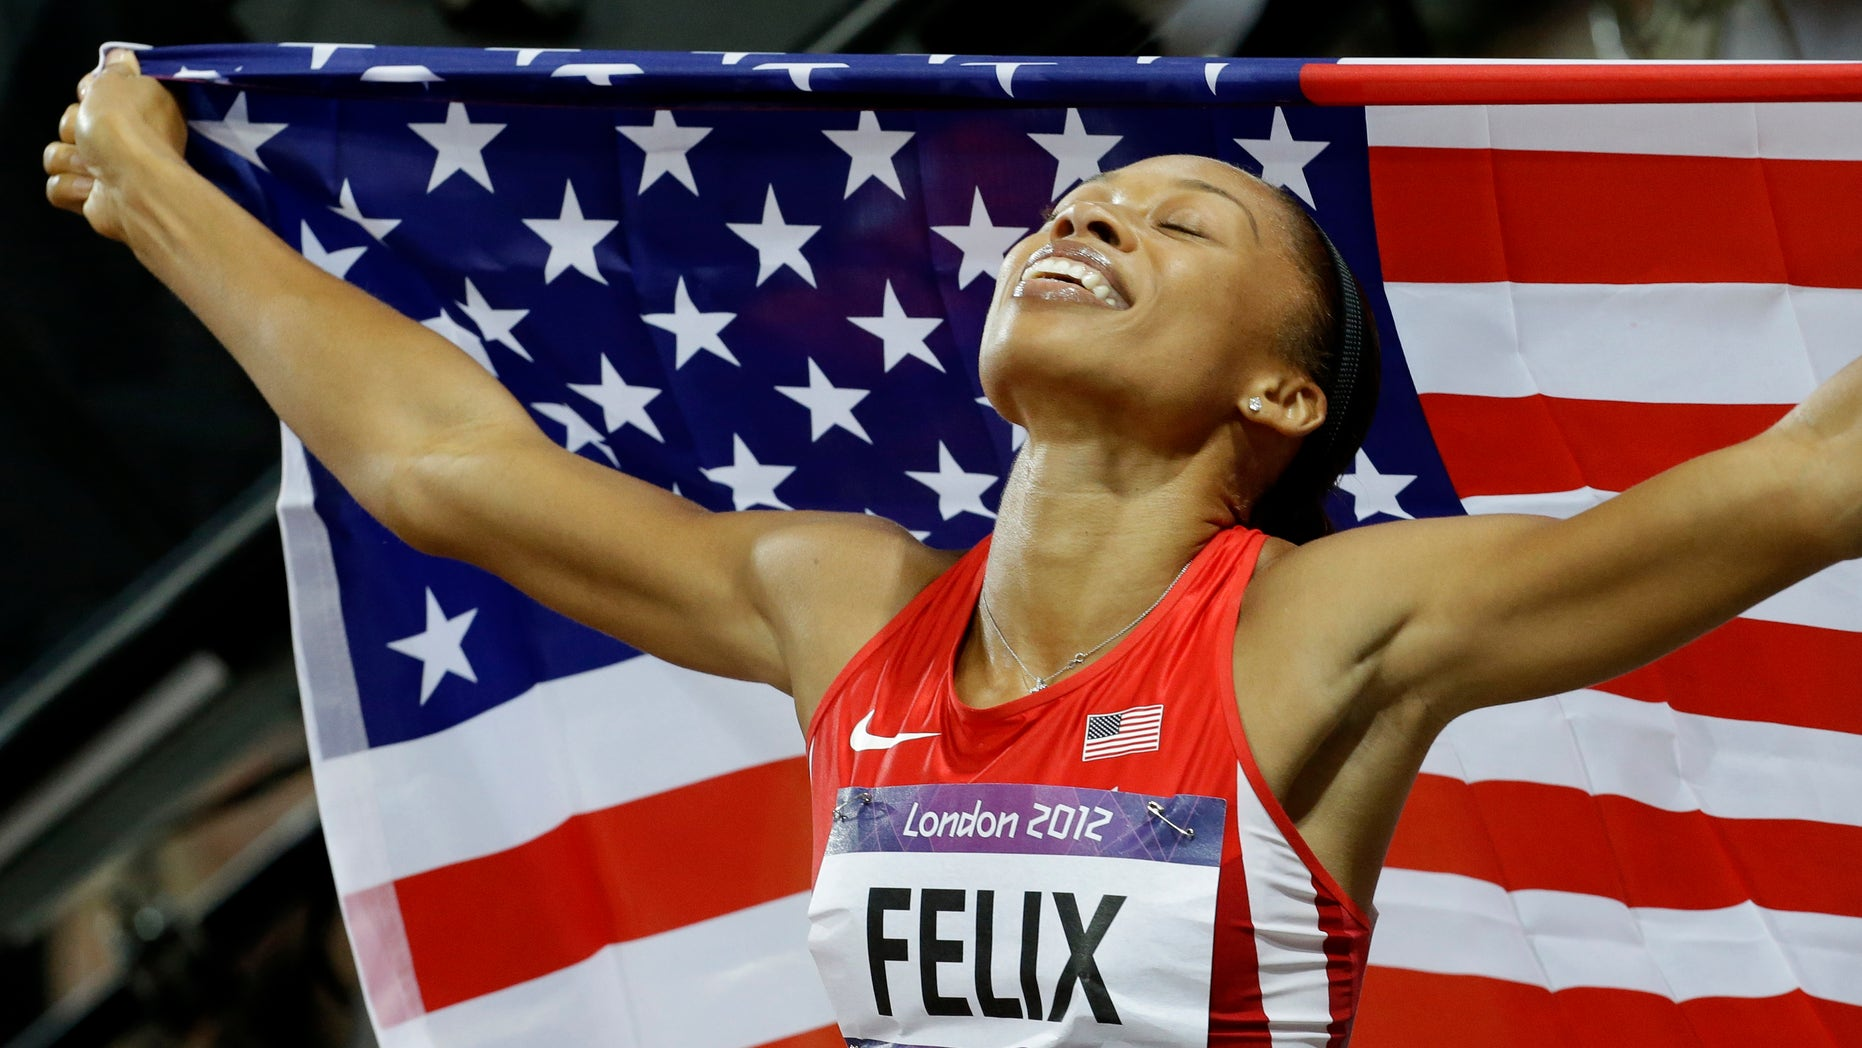 United States' Allyson Felix celebrates her in win the women's 200-meters during the athletics in the Olympic Stadium at the 2012 Summer Olympics, London, Wednesday, Aug. 8, 2012. (AP Photo/Lee Jin-man)